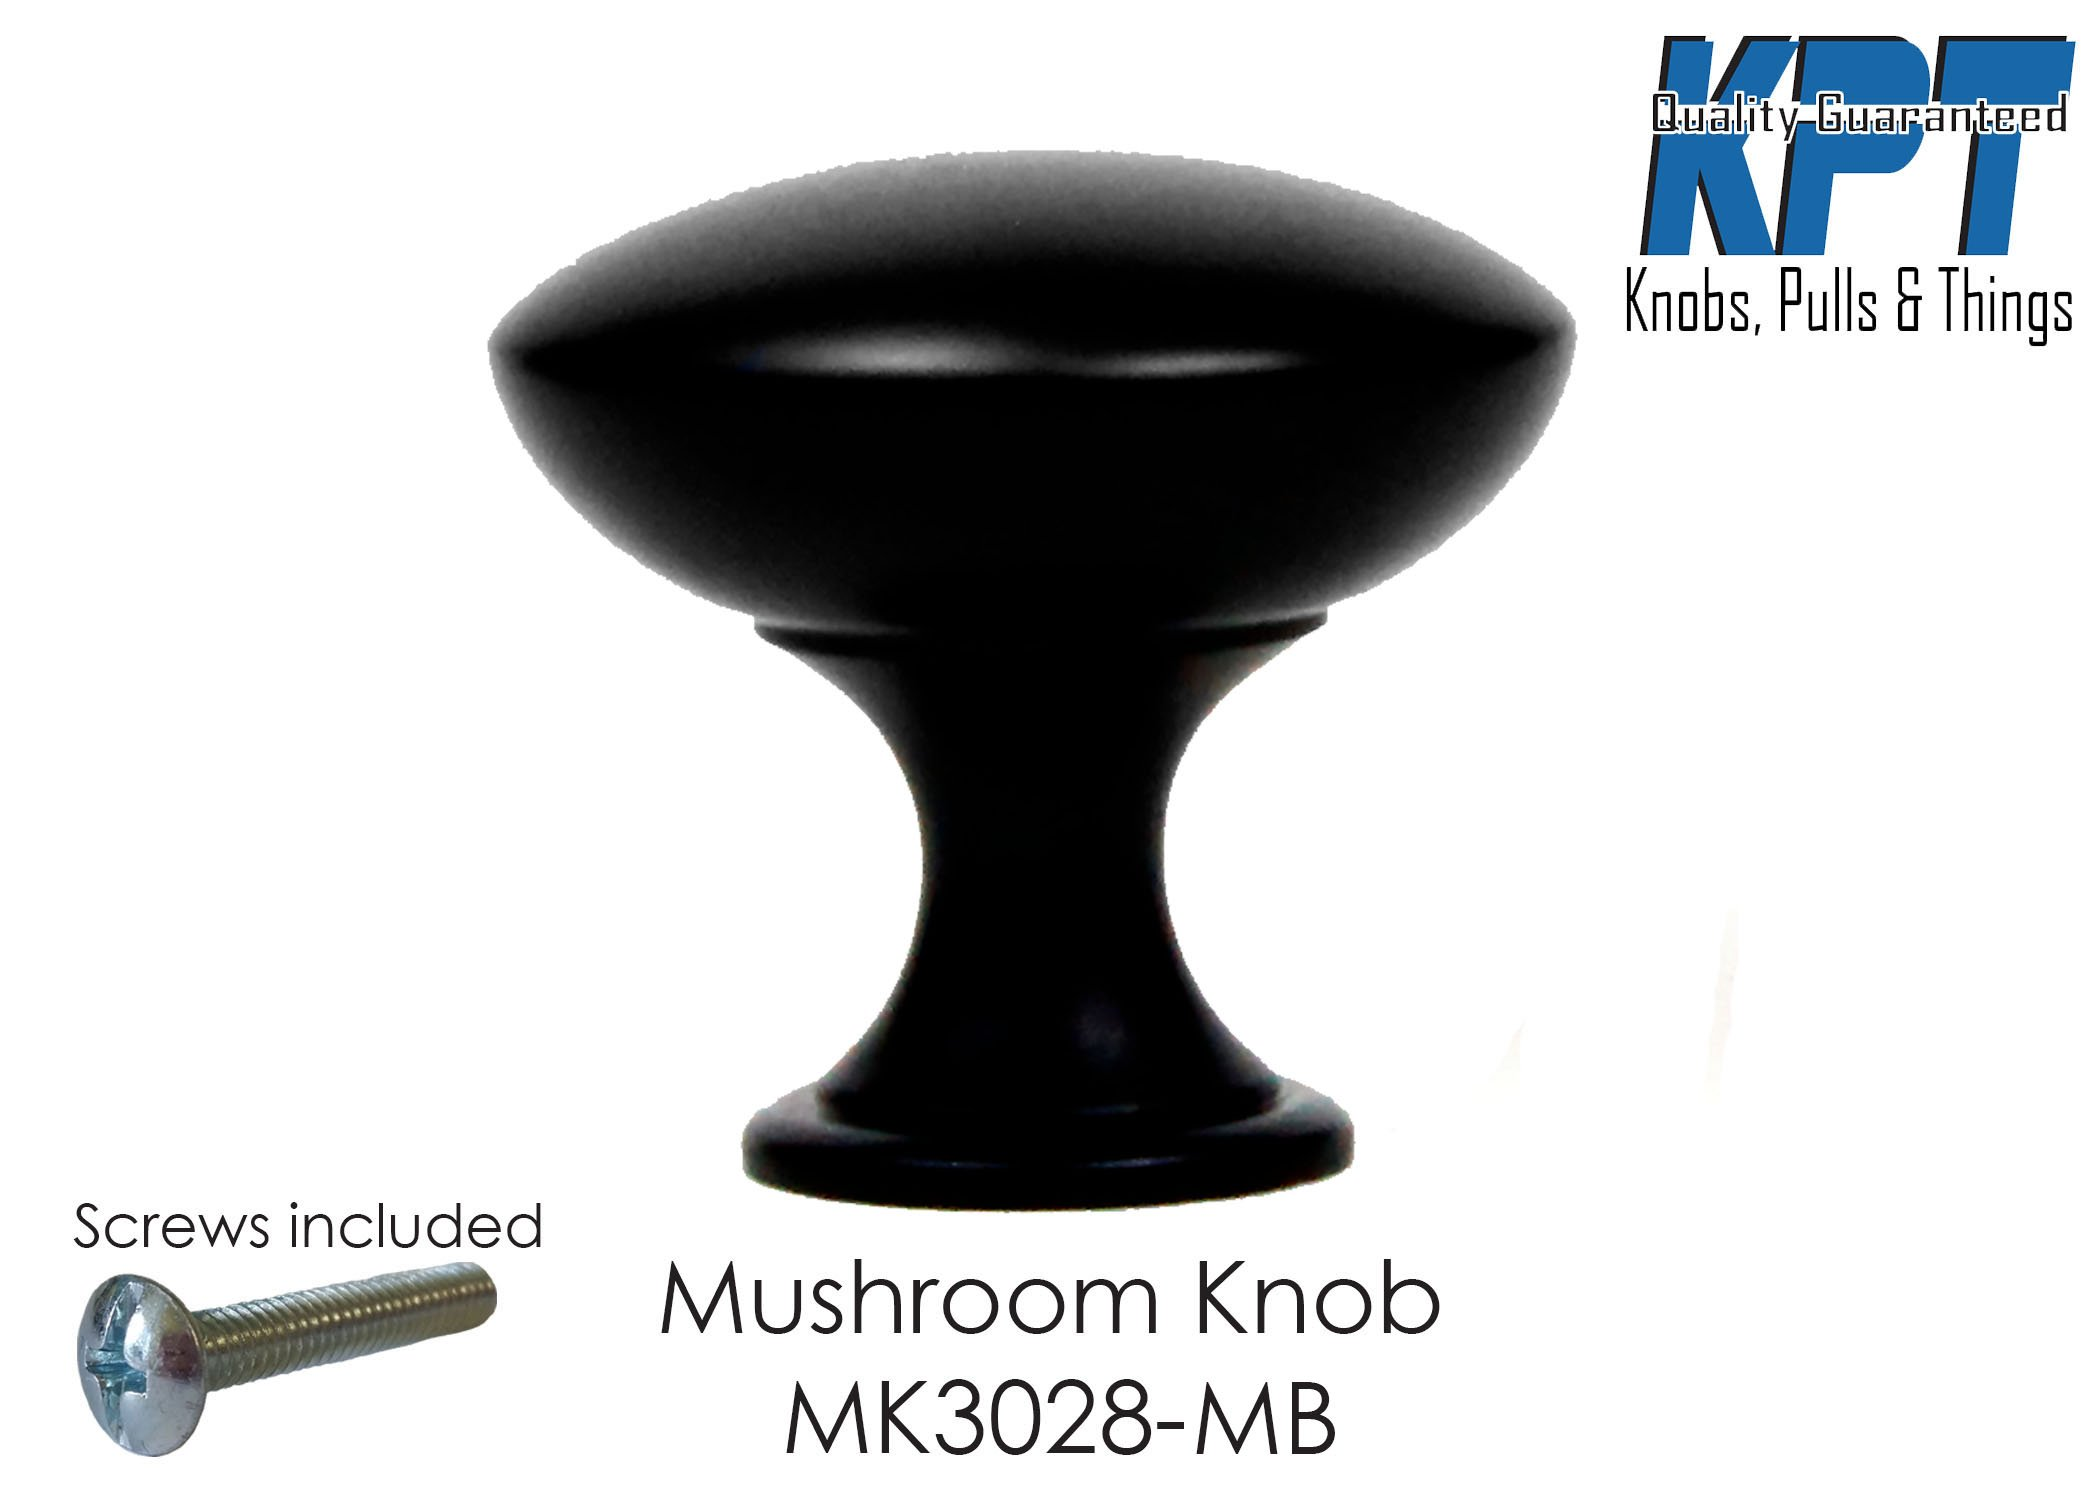 Knob Cabinet Hardware Traditional Round Mushroom Style Drawer Door Pull Handle Home Decorative in Matte Black 25 Pack